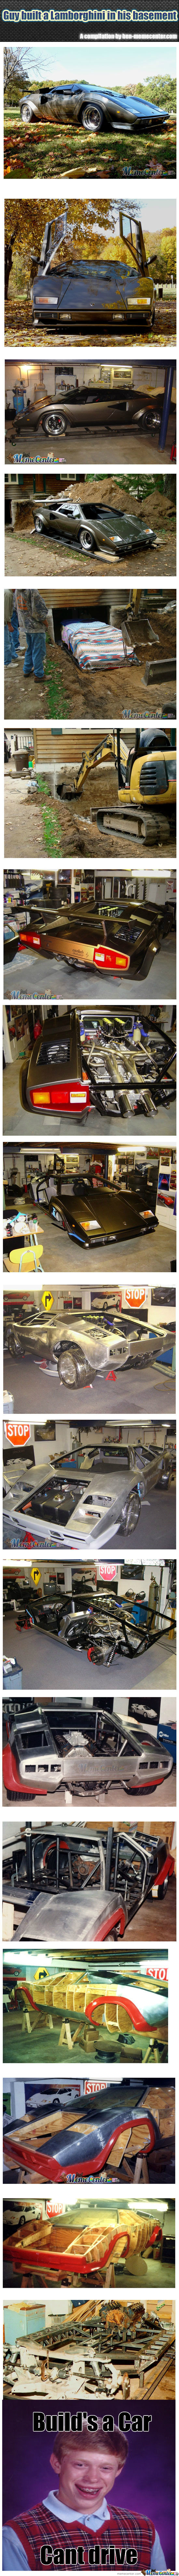 [RMX] Guy Built A Lamborghini In His Basement